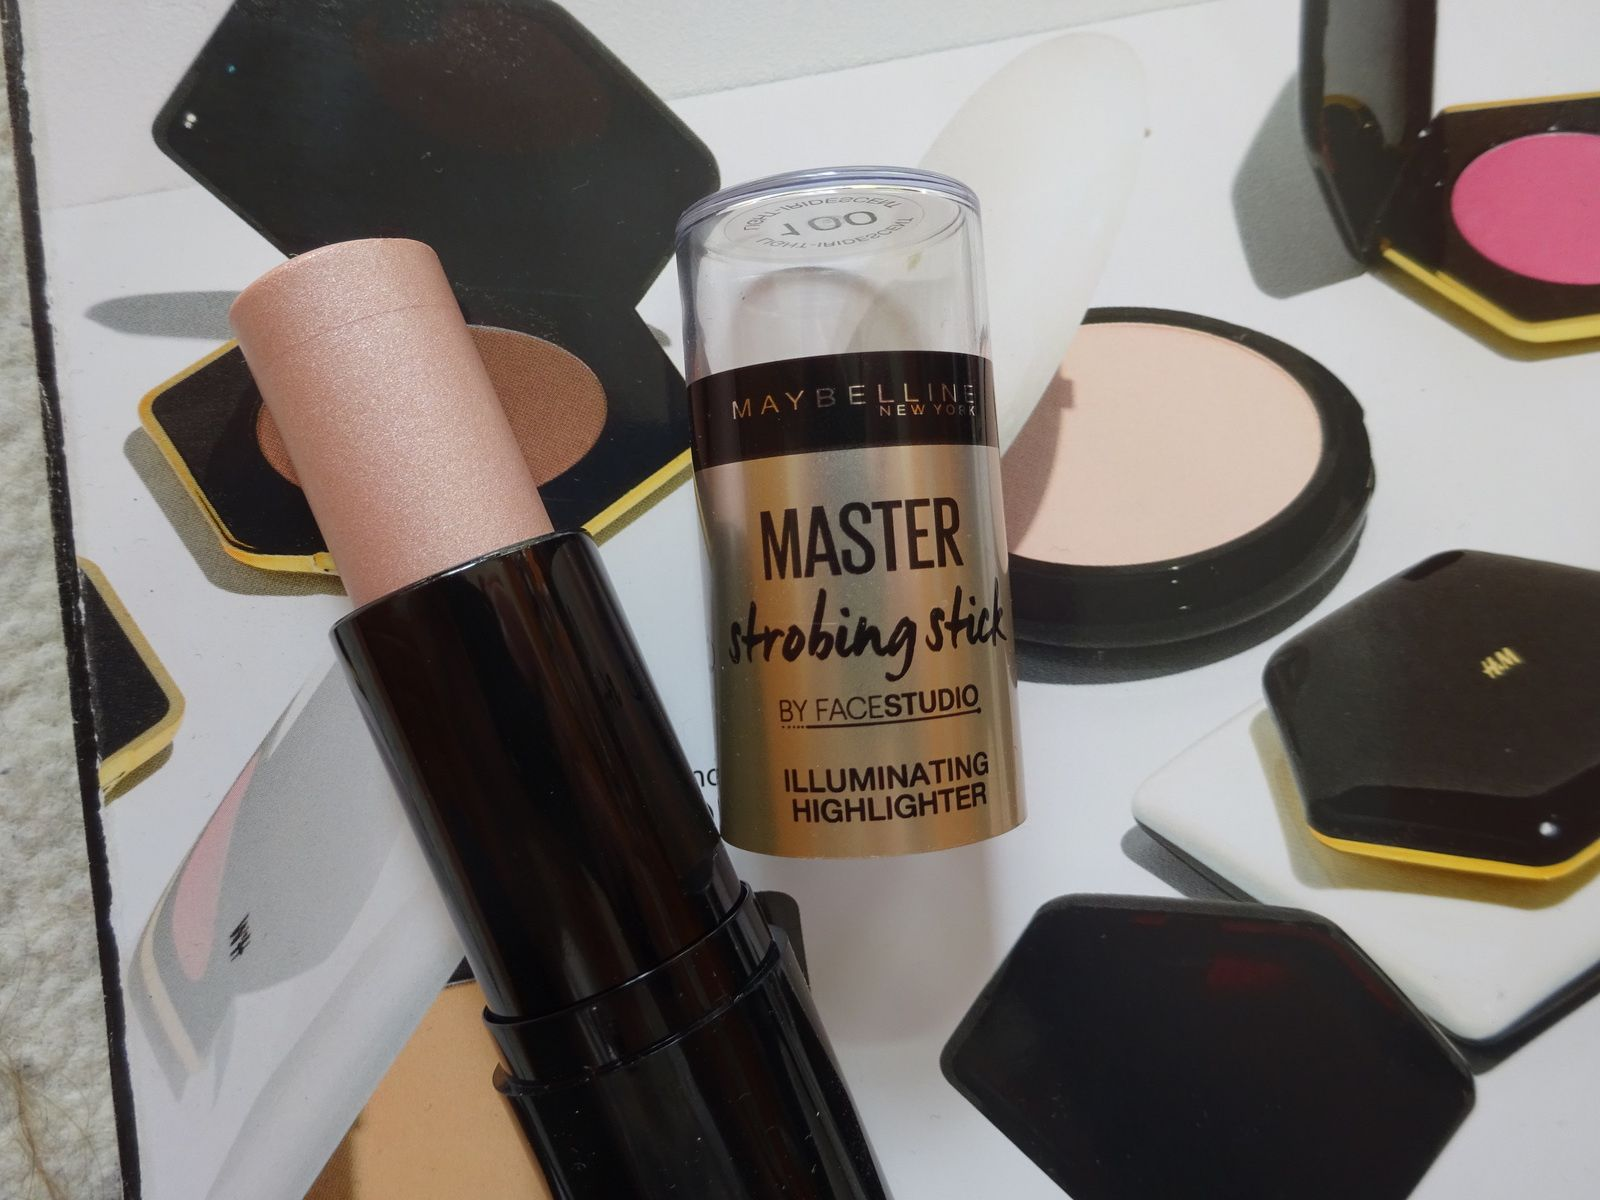 Review: Maybelline Master Strobing Stick